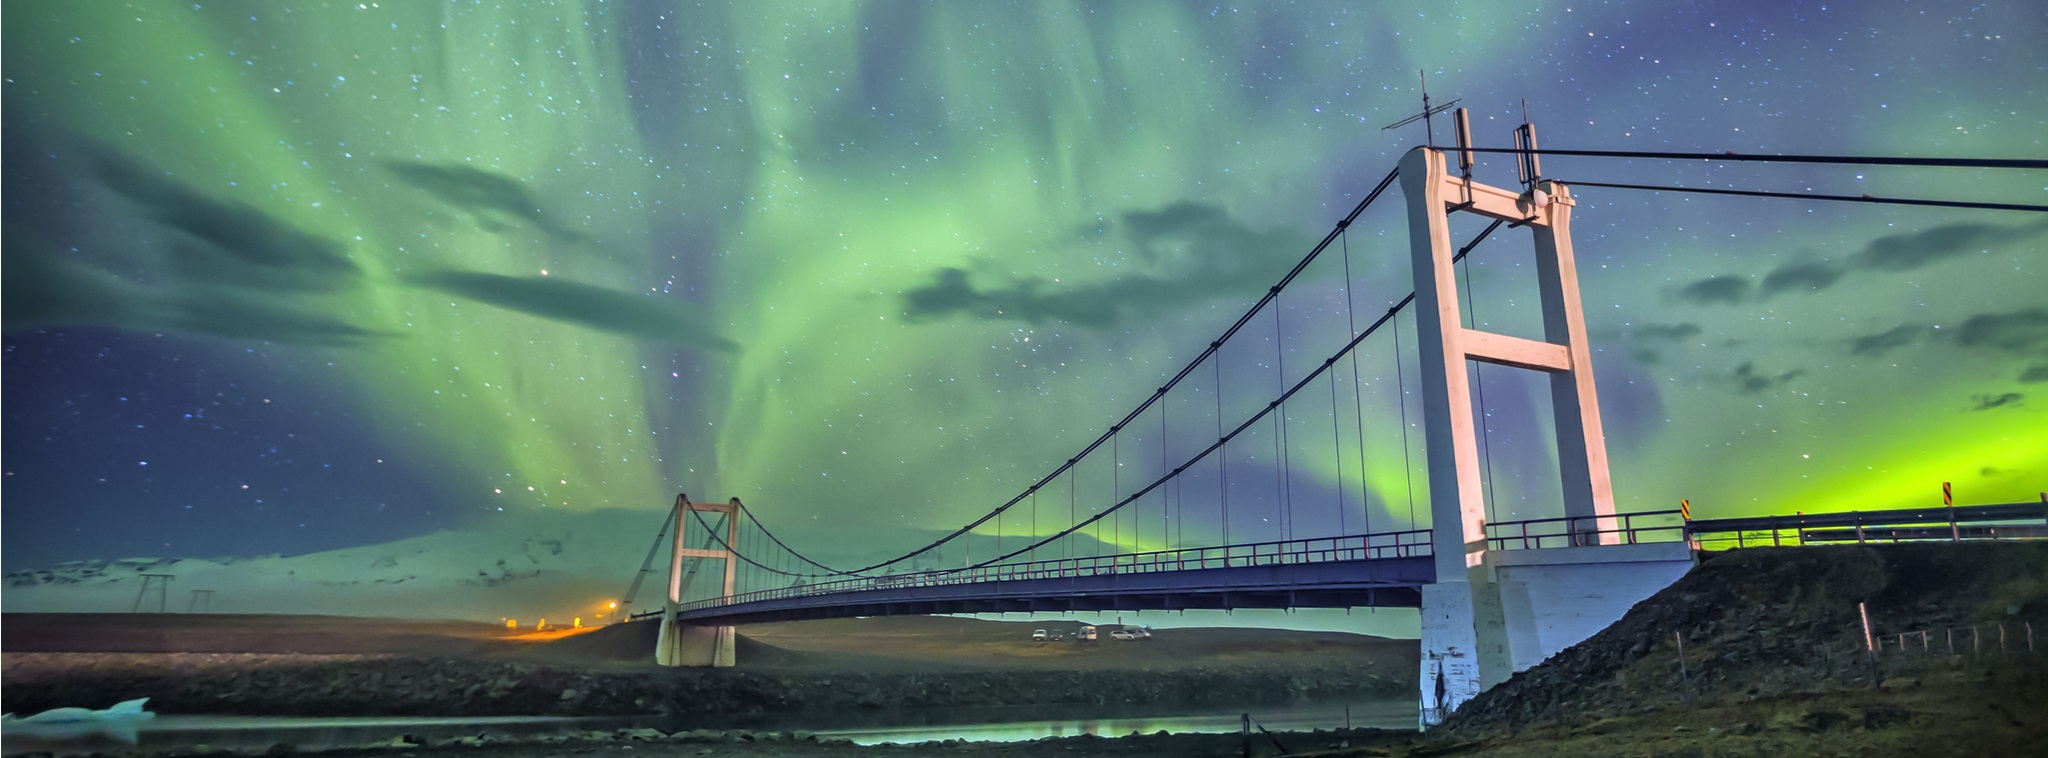 Northern lights package at Jokulsarlon